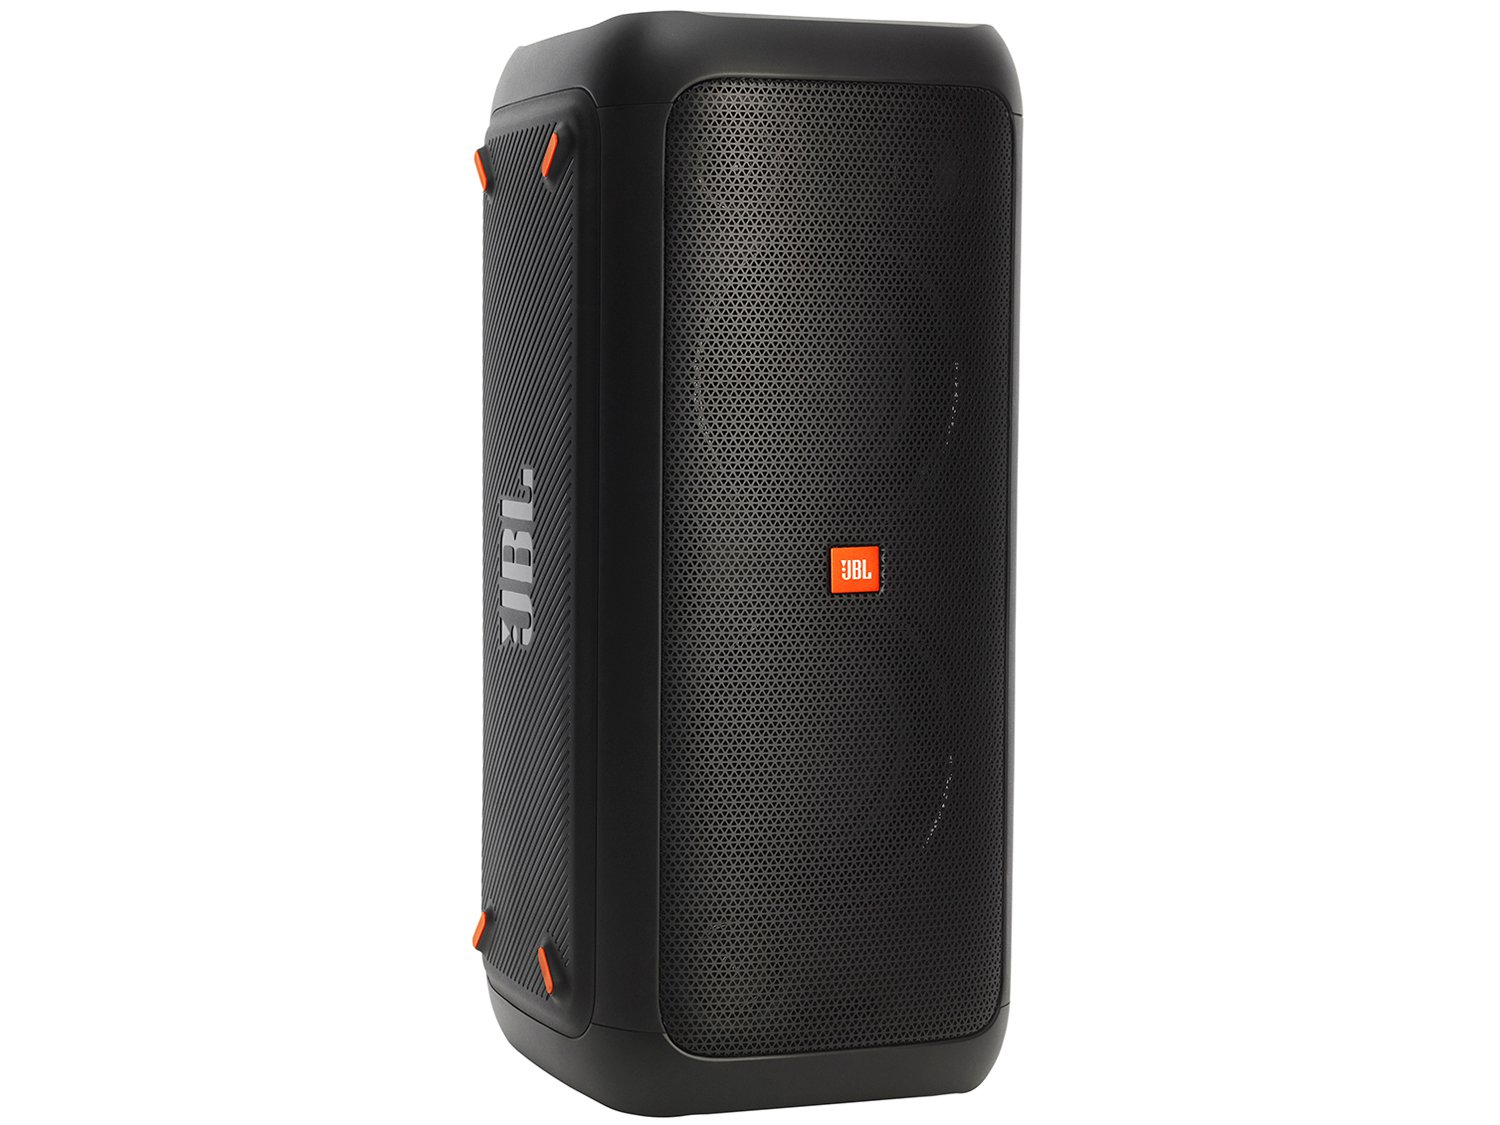 Caixa de Som Portátil Bluetooth JBL Party Box 300 - USB 120W - Bivolt - 16